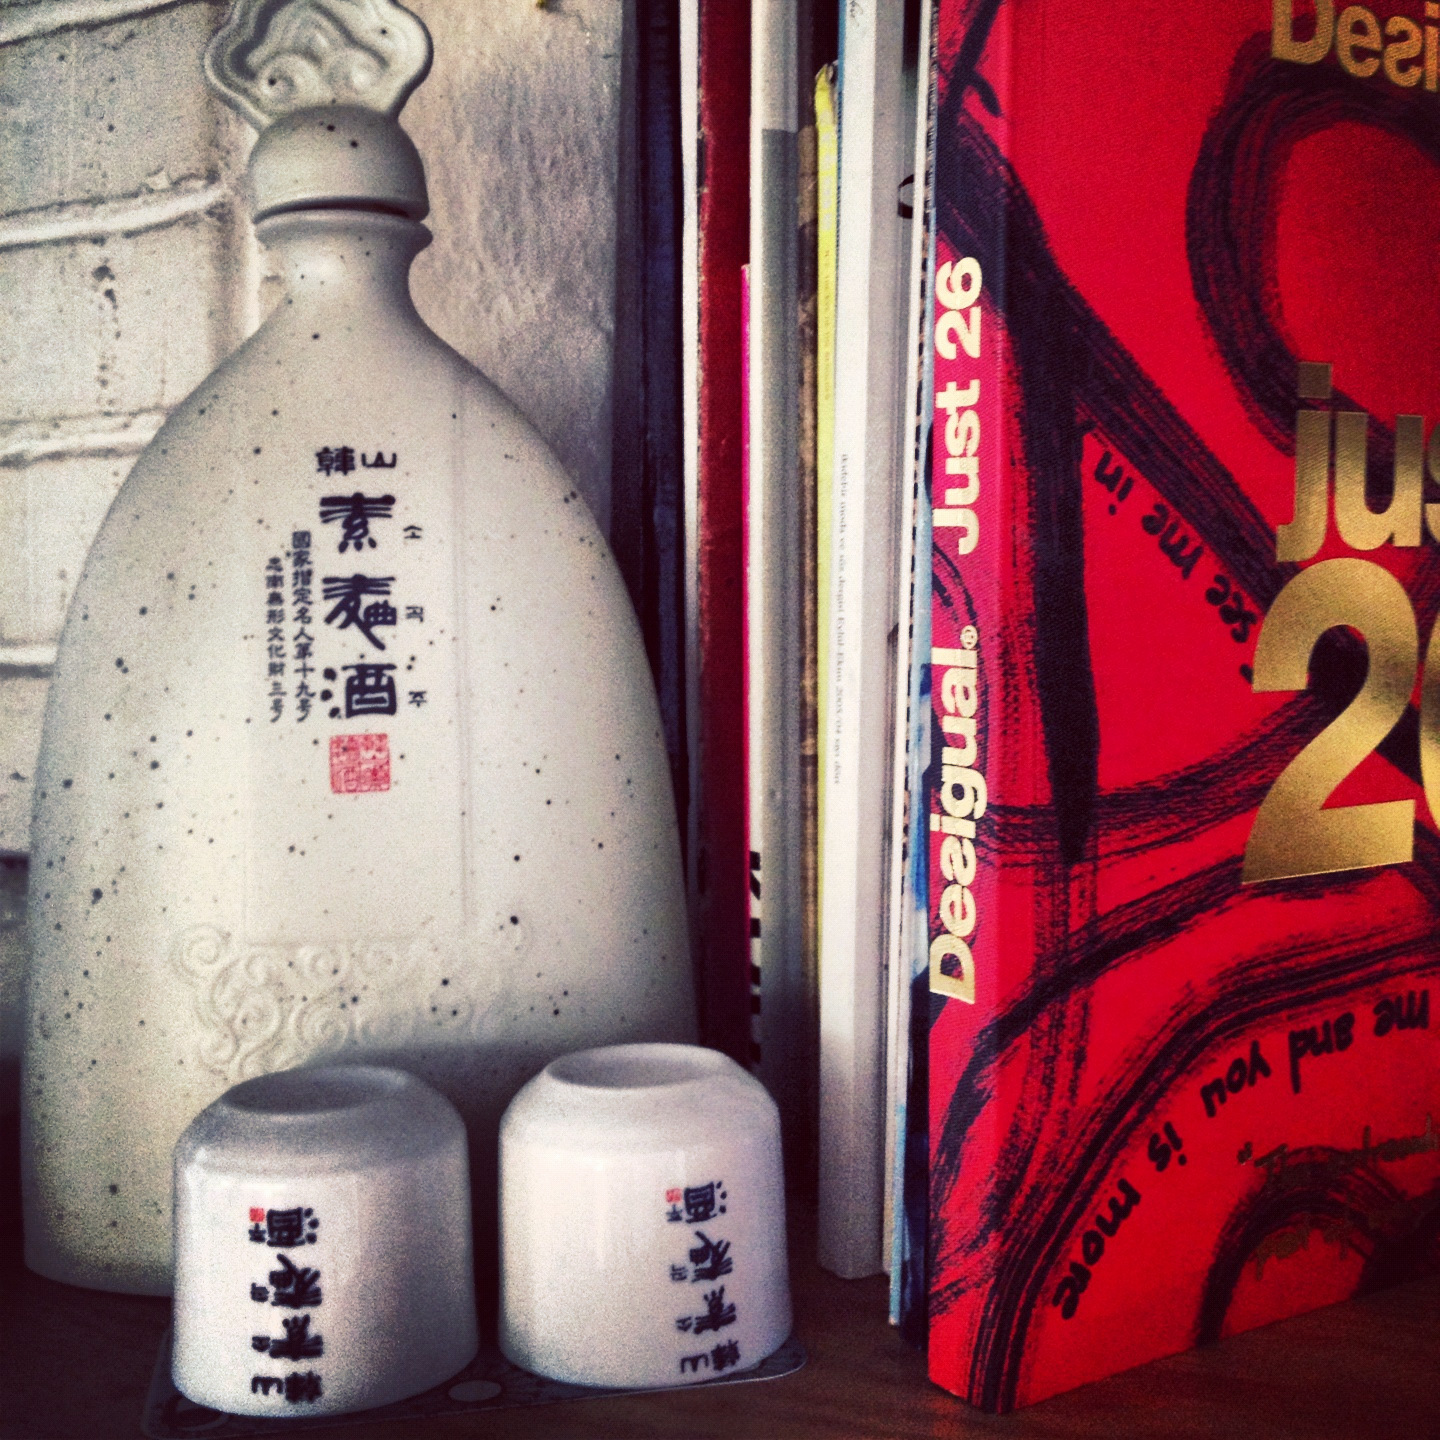 Sake bottle and glasses